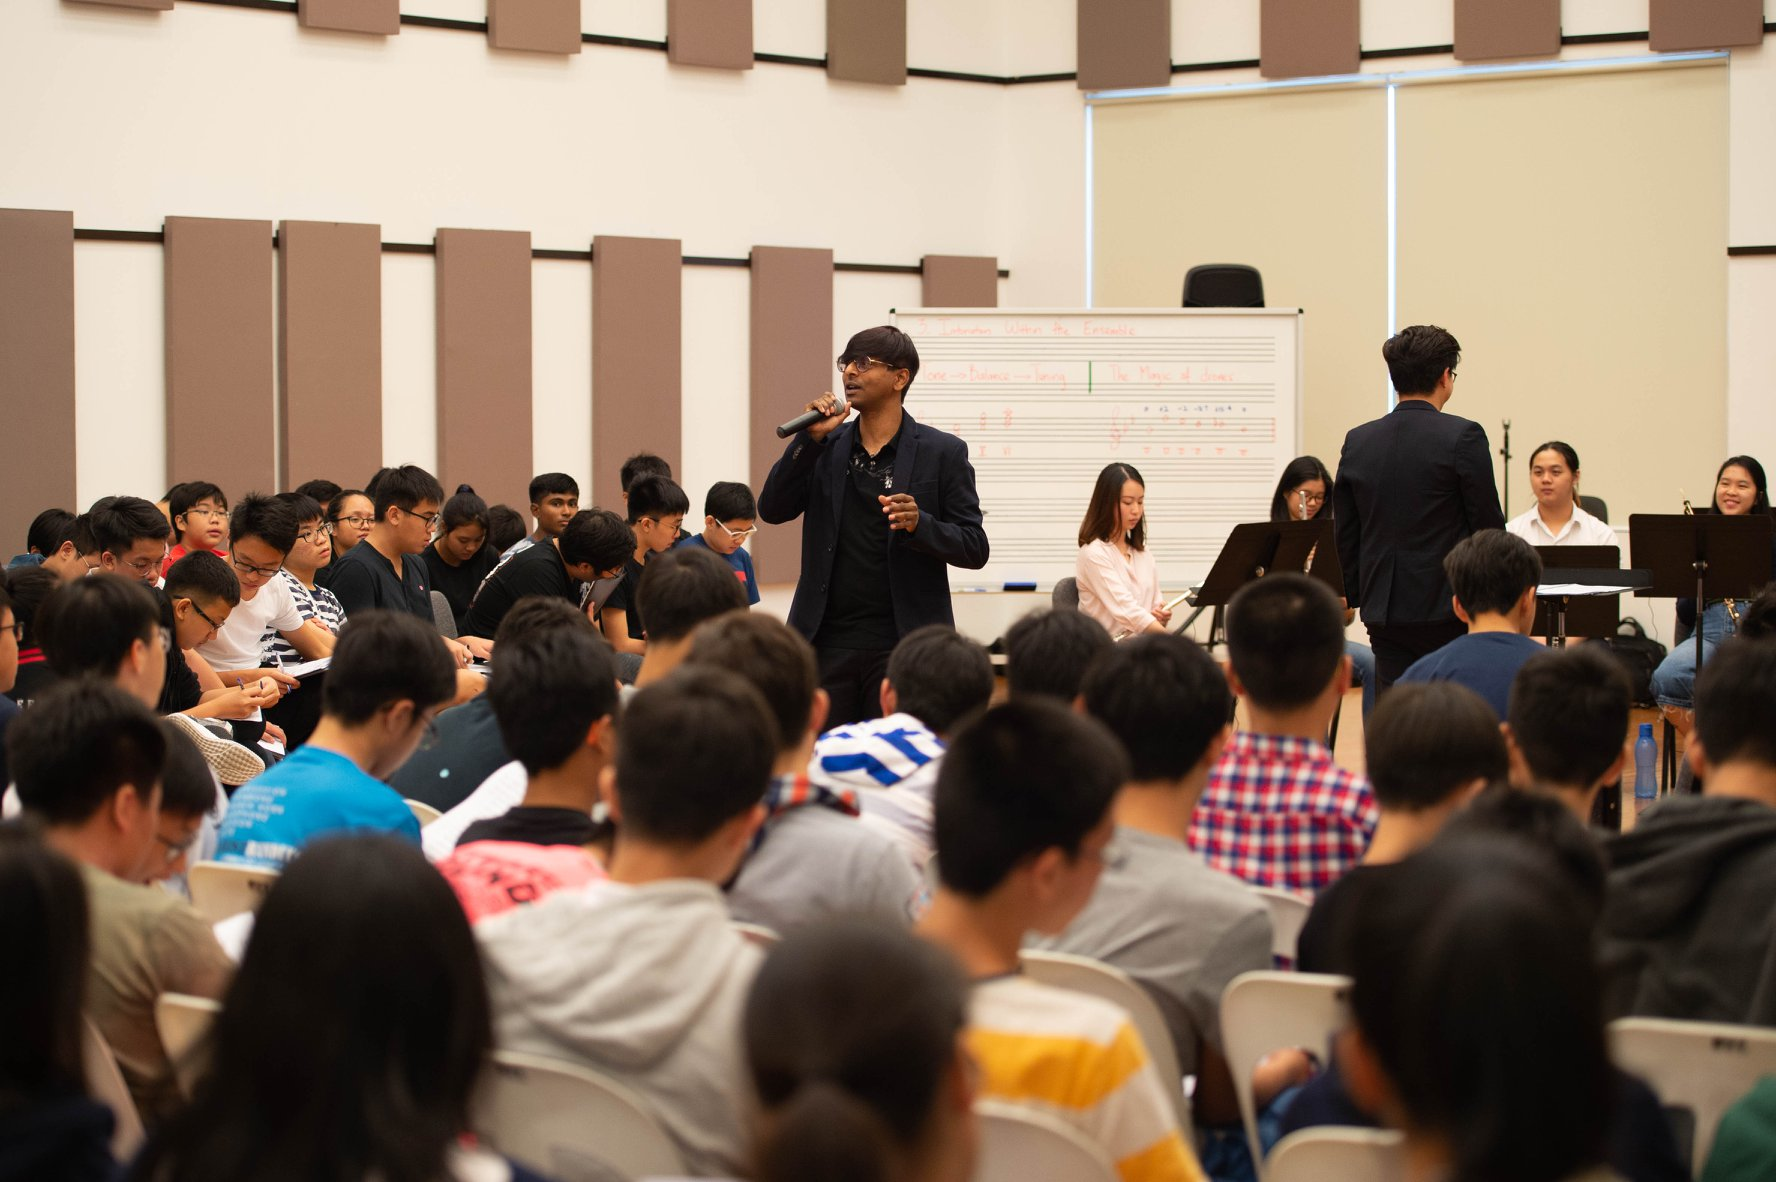 YST alumnus Alvin Seville ('18) presenting a workshop to over 200 band students at the Singapore Band Clinic.